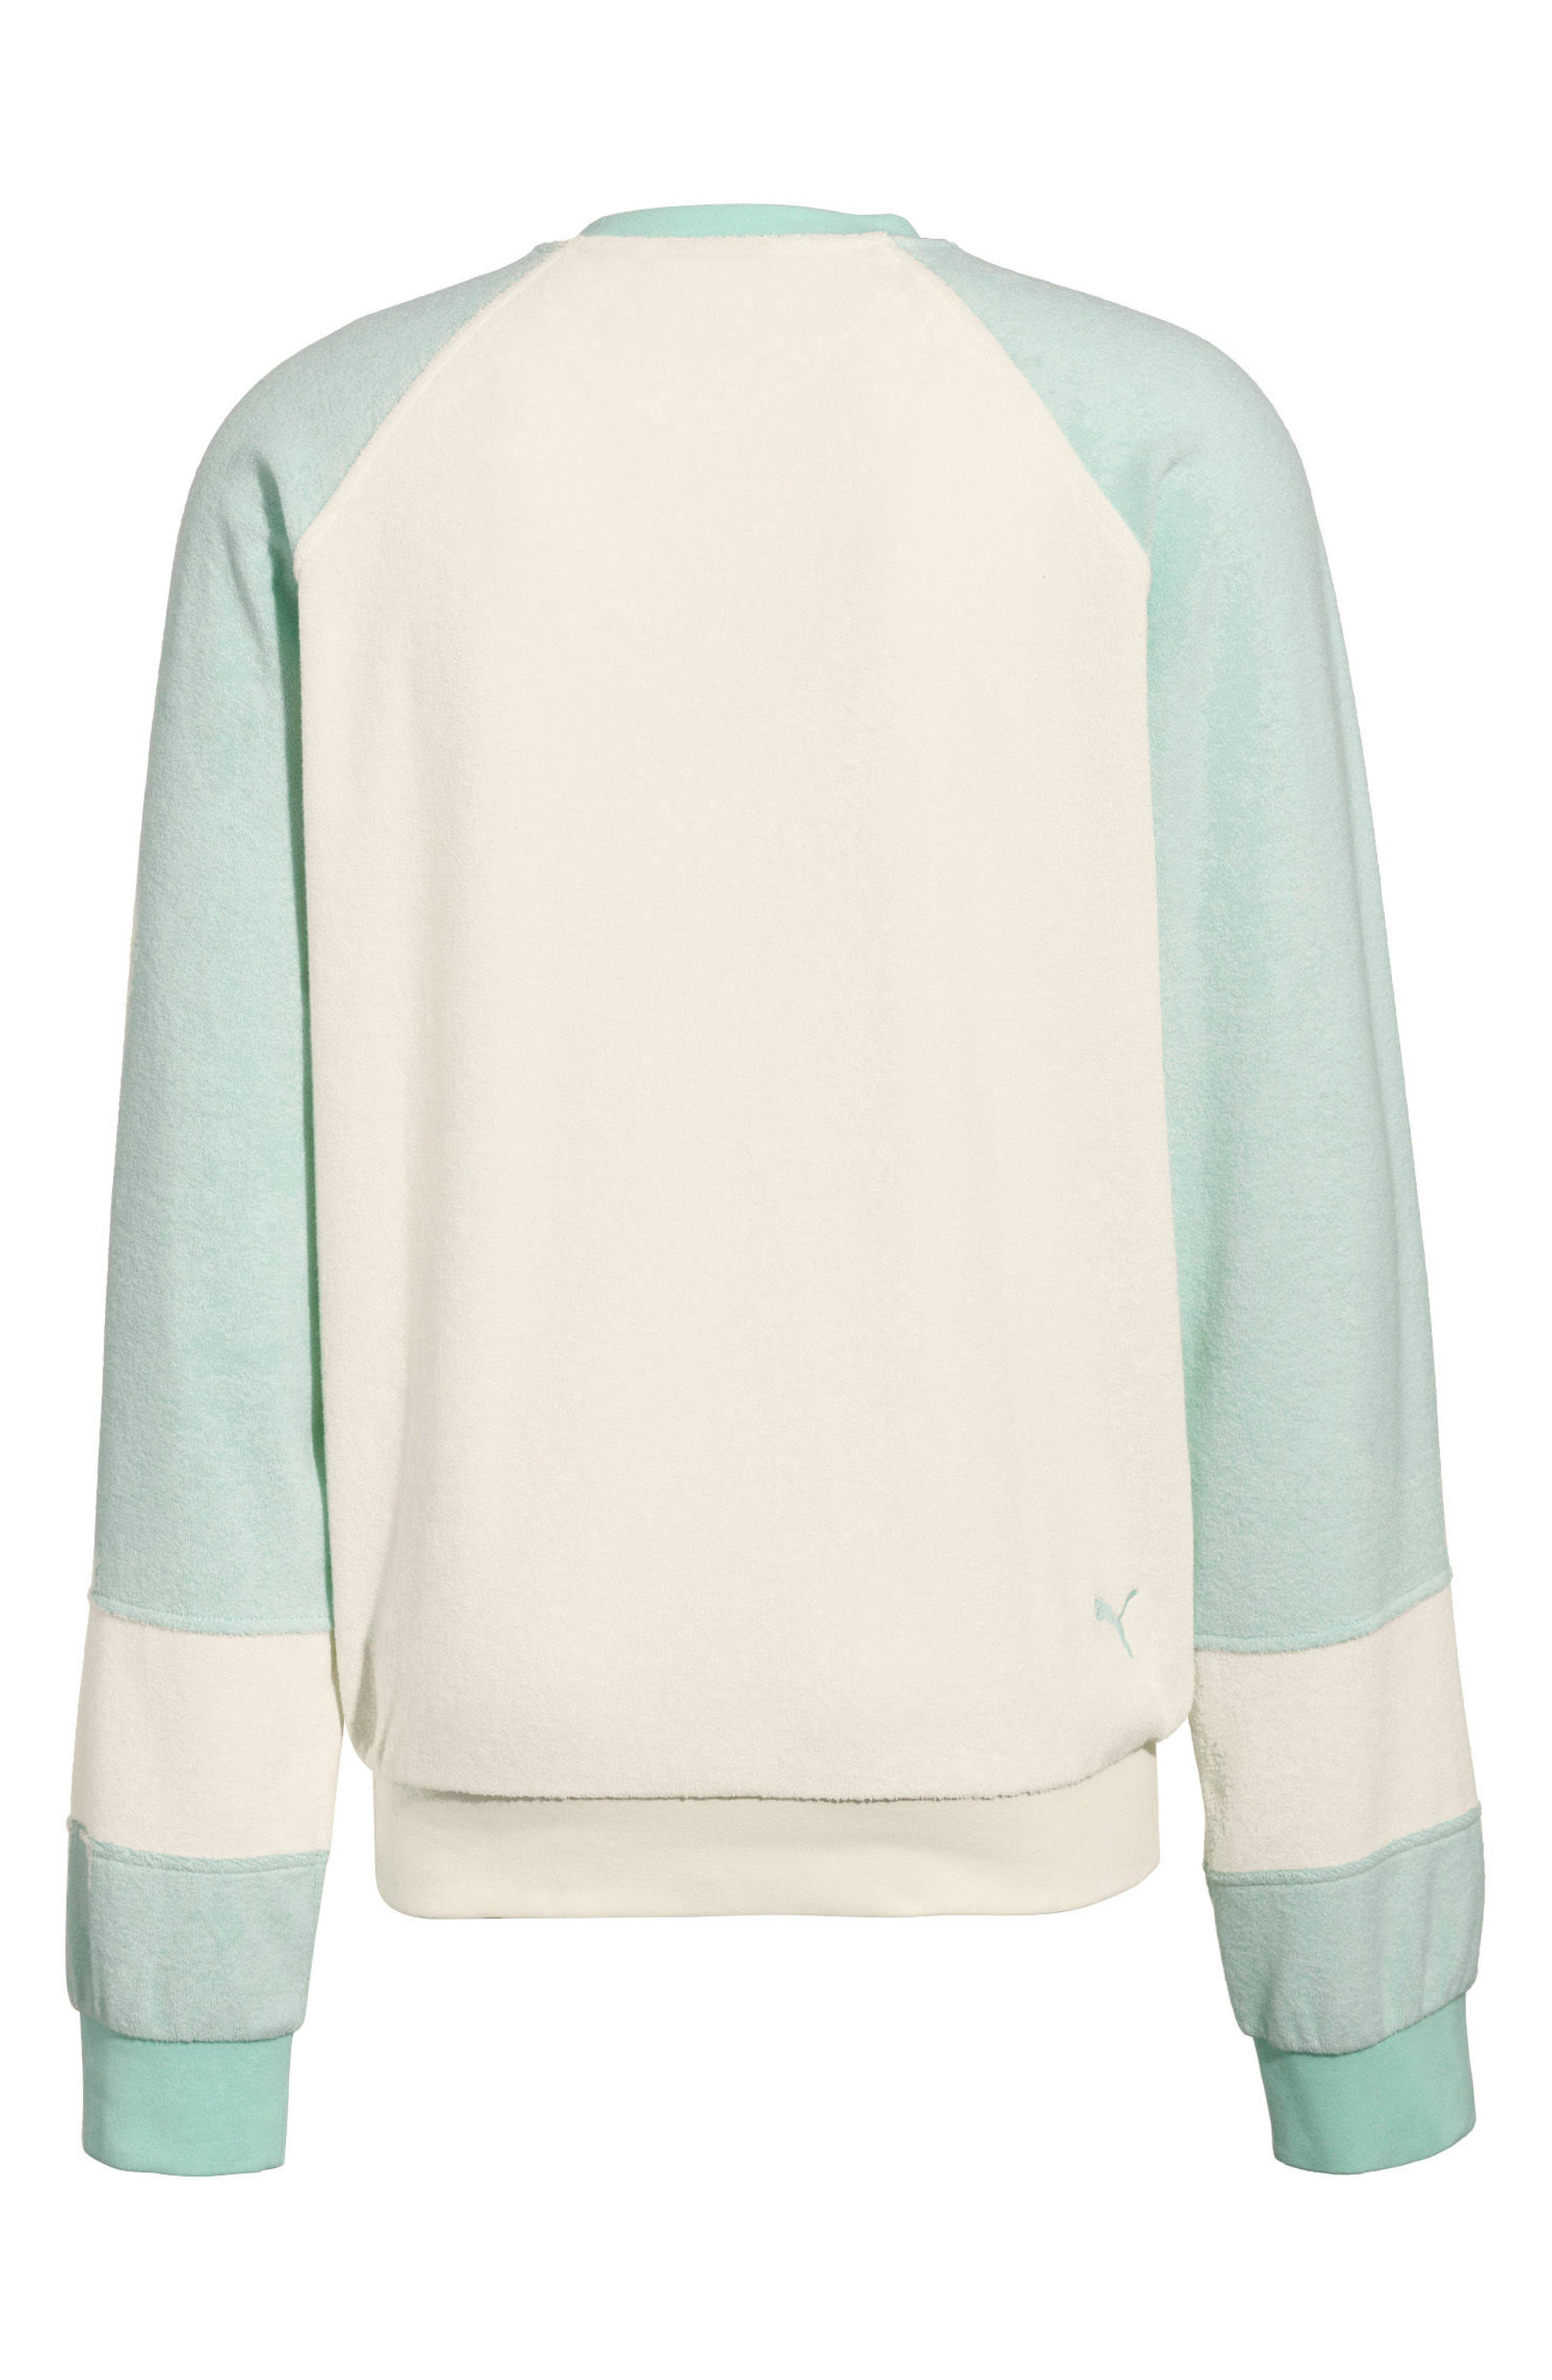 PUMA by Rihanna Palm Graphic Terry Cloth Sweater,                             Alternate thumbnail 2, color,                             100